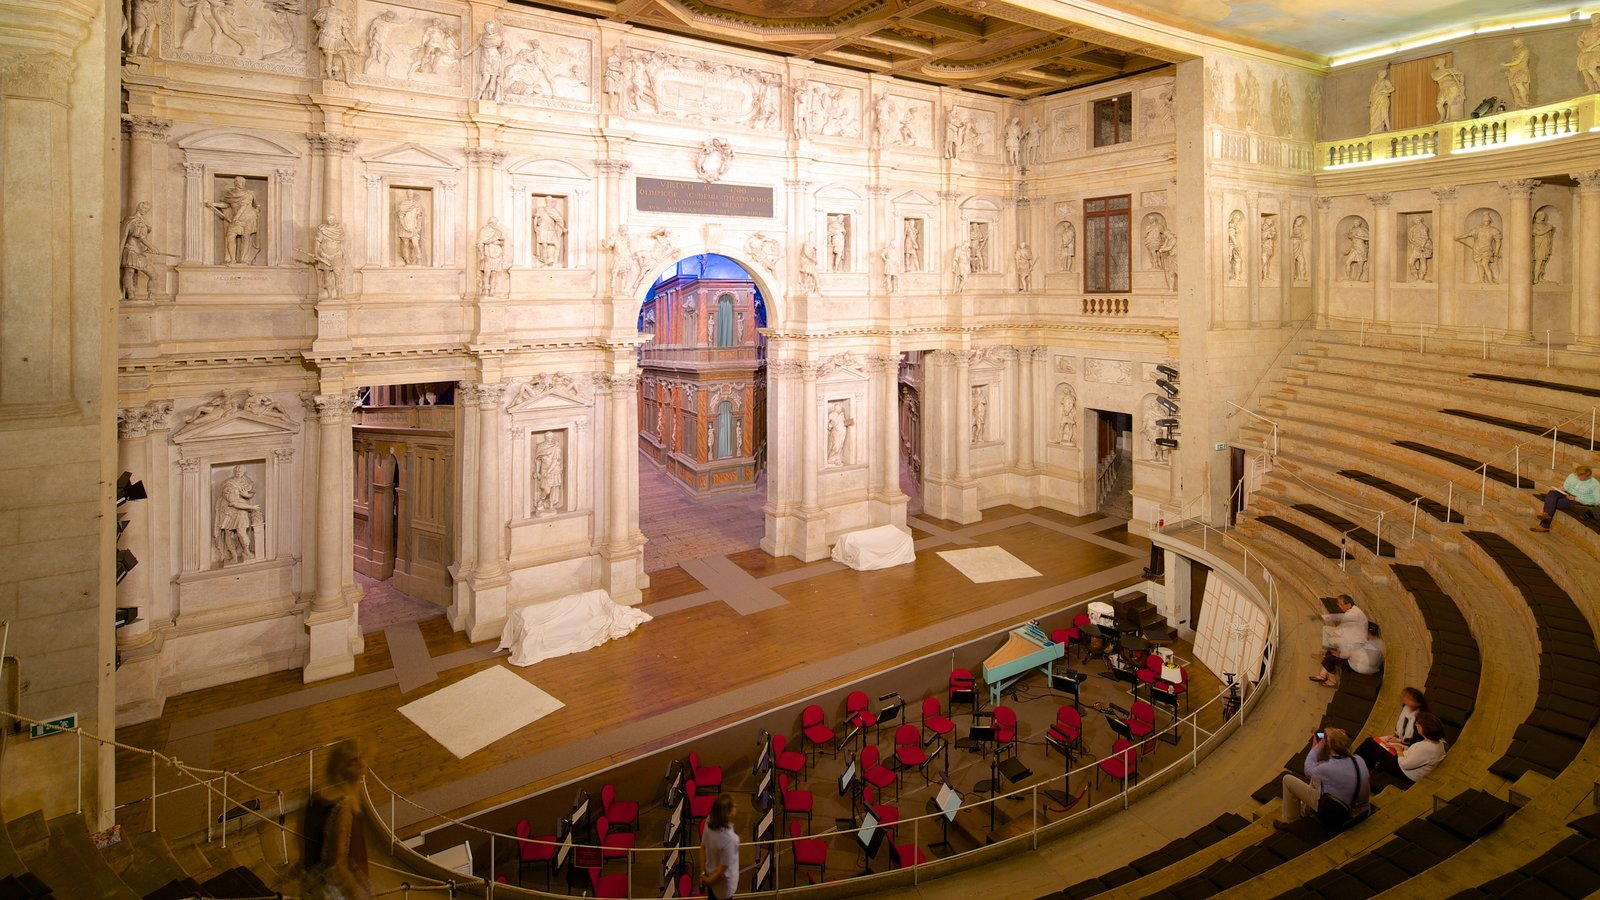 Vicenza featuring theater scenes and interior views